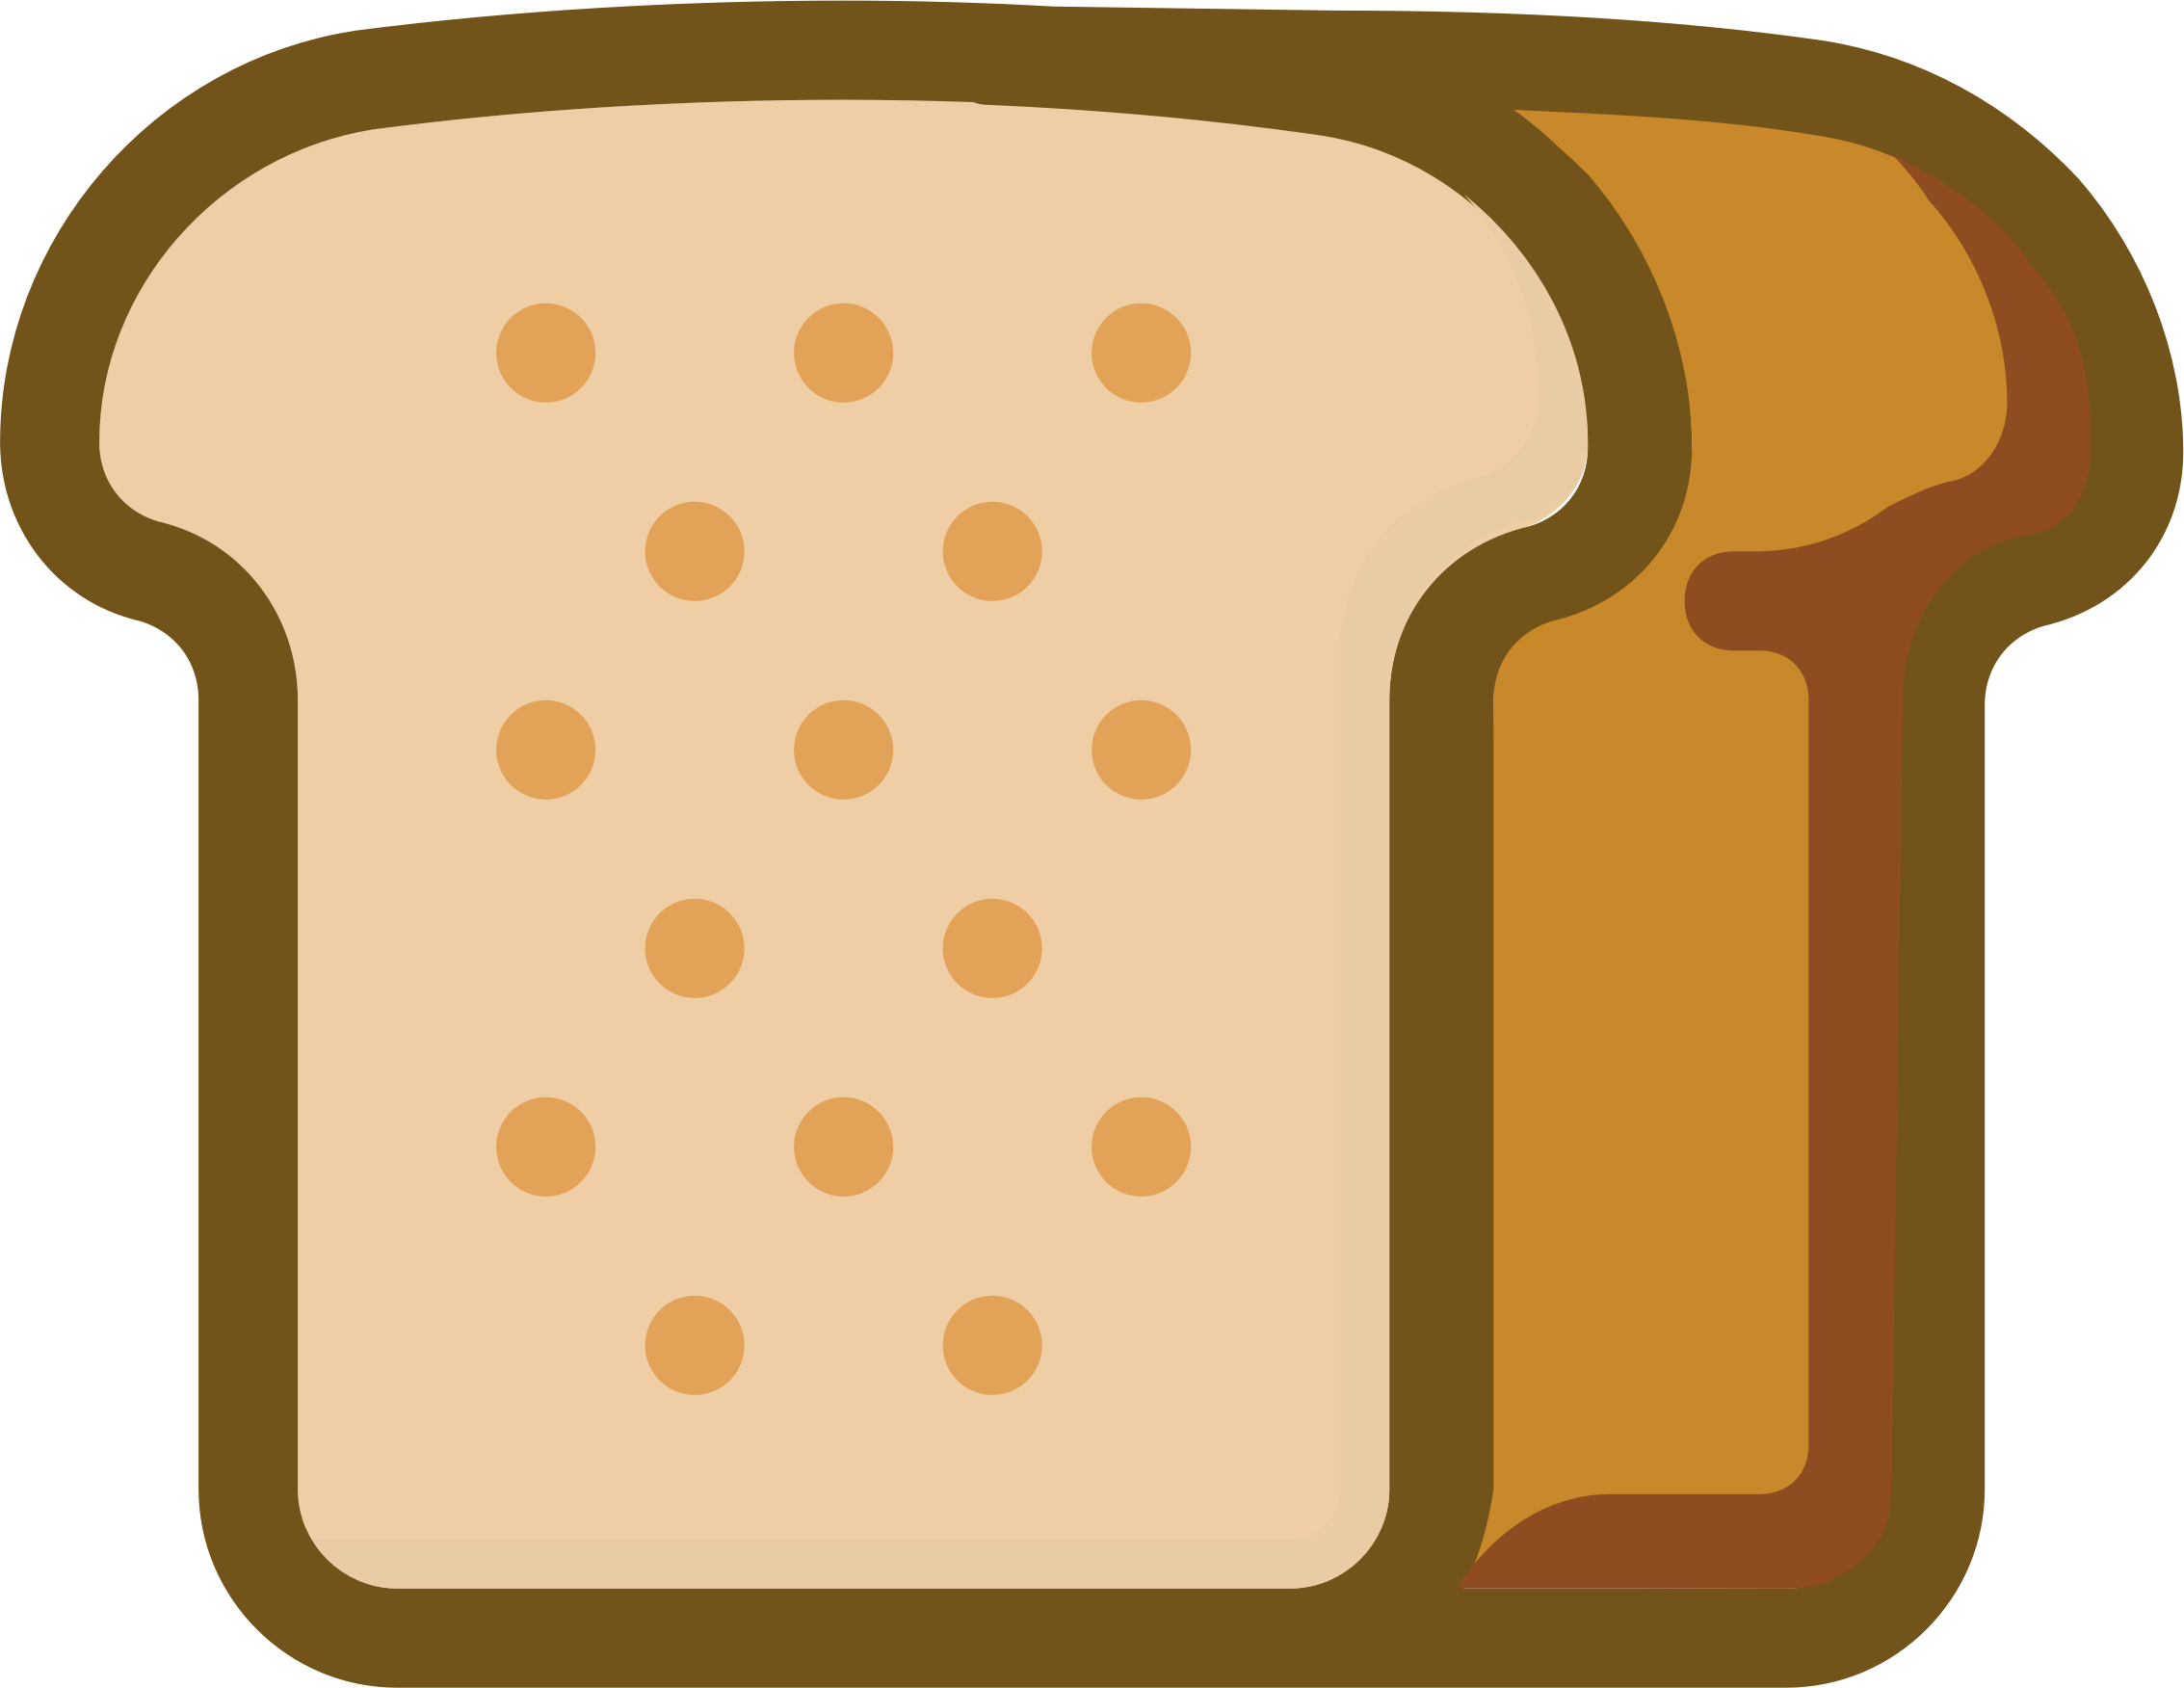 Grain clipart bread. Our daily by cactus